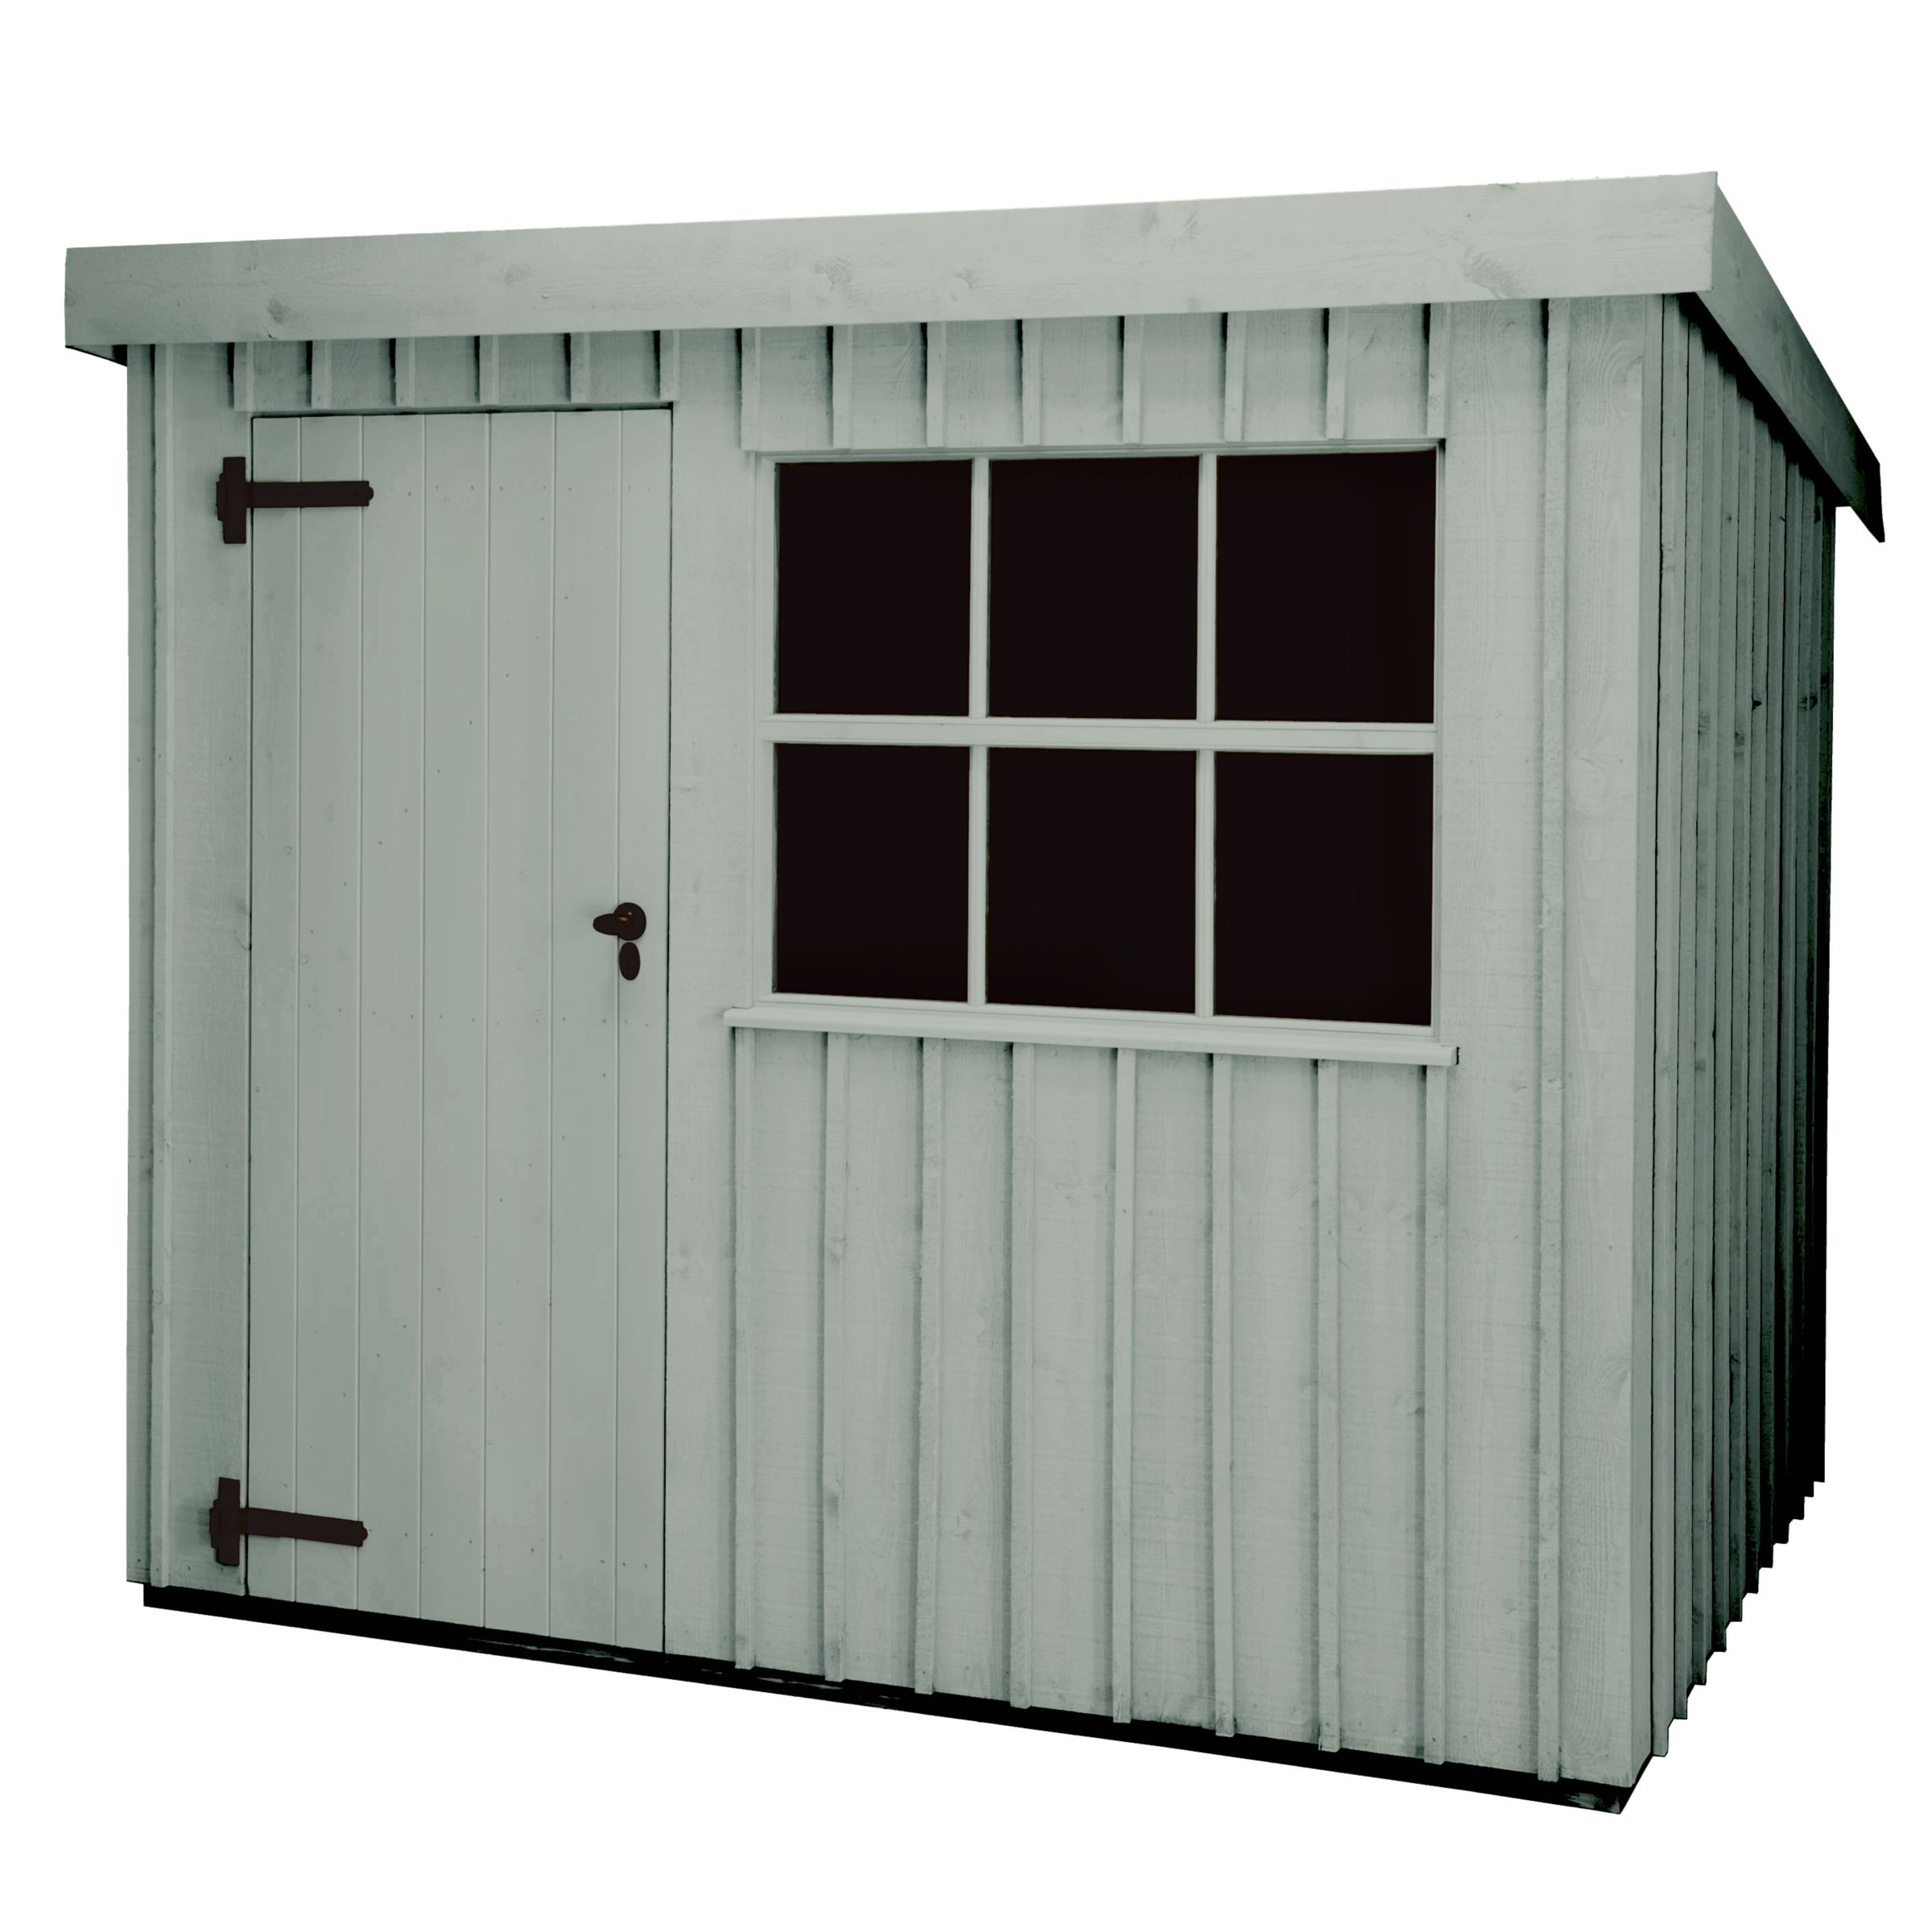 National Trust By Crane Oxburgh Fsc Garden Shed, 2.4x3m